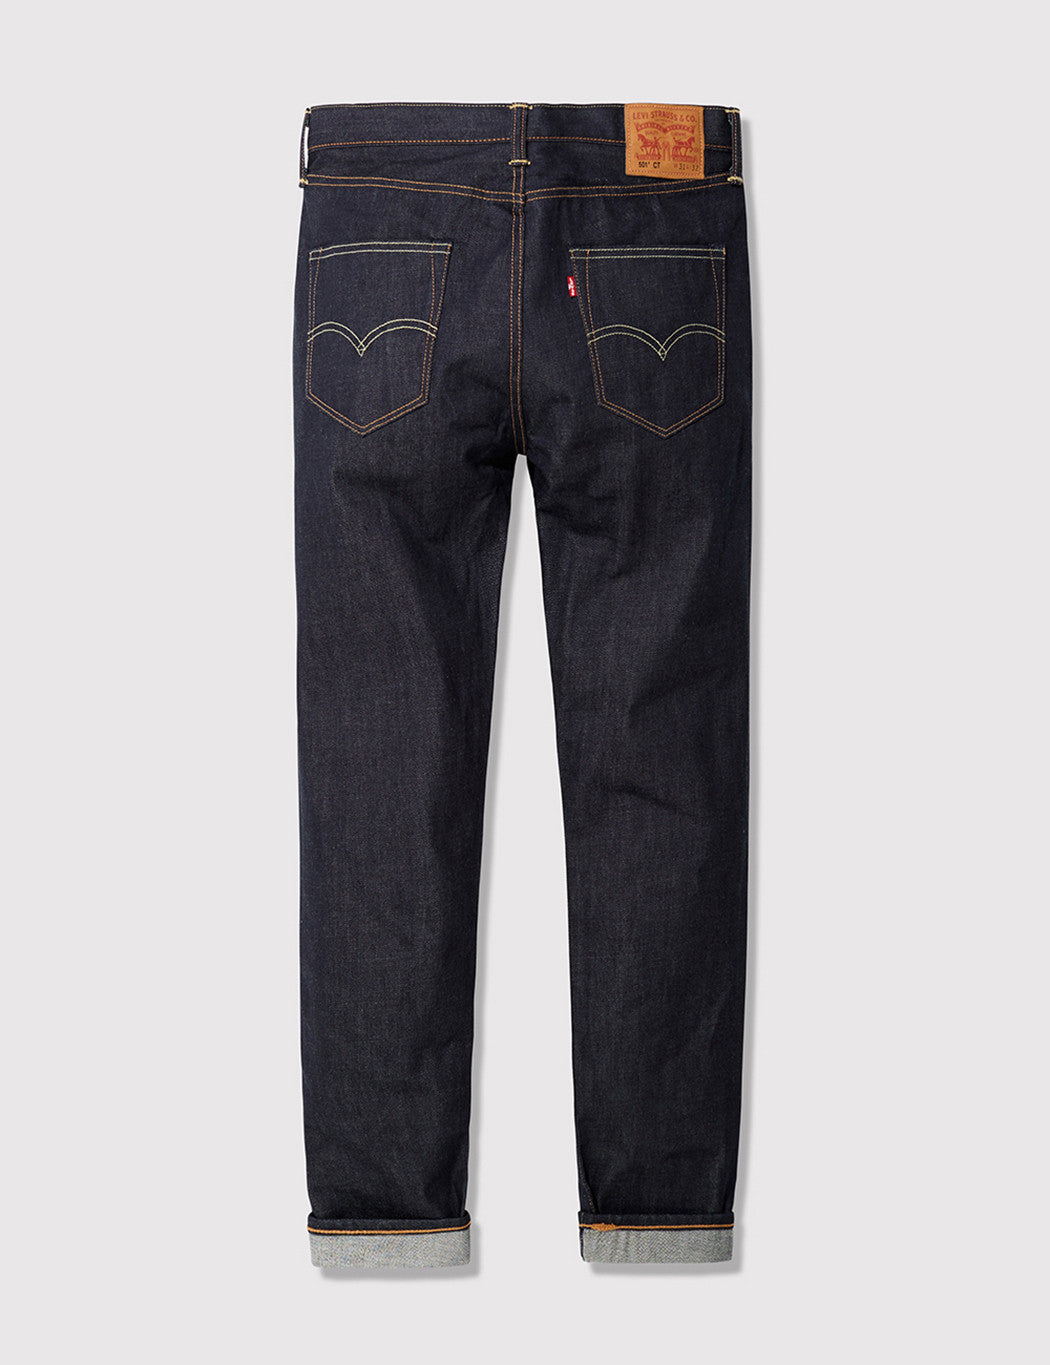 Levis 501 CT Customised Tapered Jeans - Long Day Rigid Blue